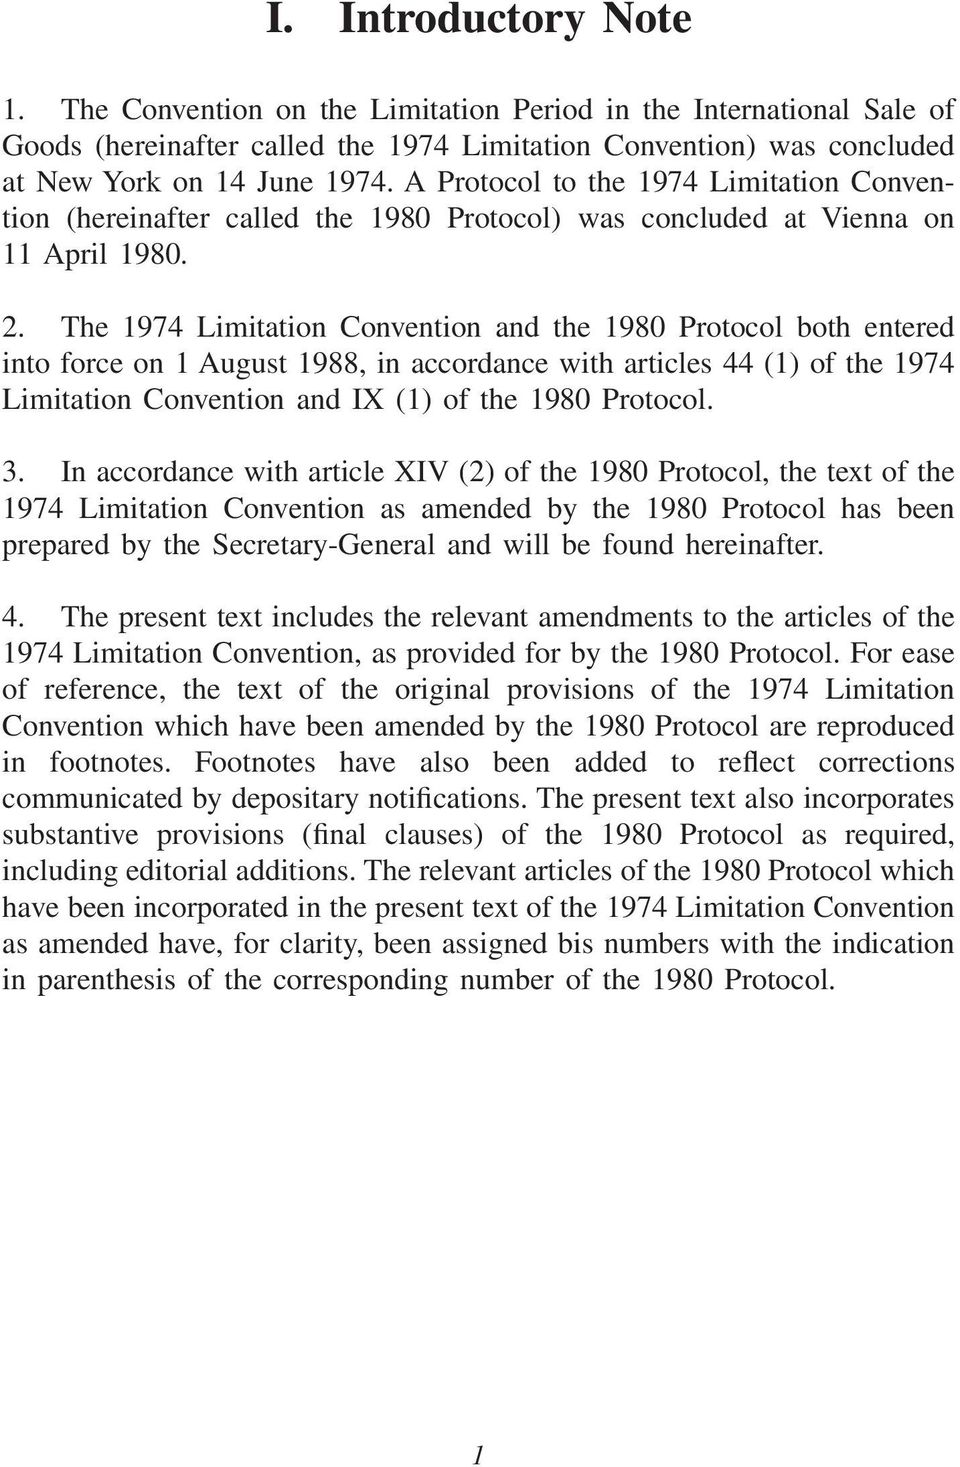 The 1974 Limitation Convention and the 1980 Protocol both entered into force on 1 August 1988, in accordance with articles 44 (1) of the 1974 Limitation Convention and IX (1) of the 1980 Protocol. 3.